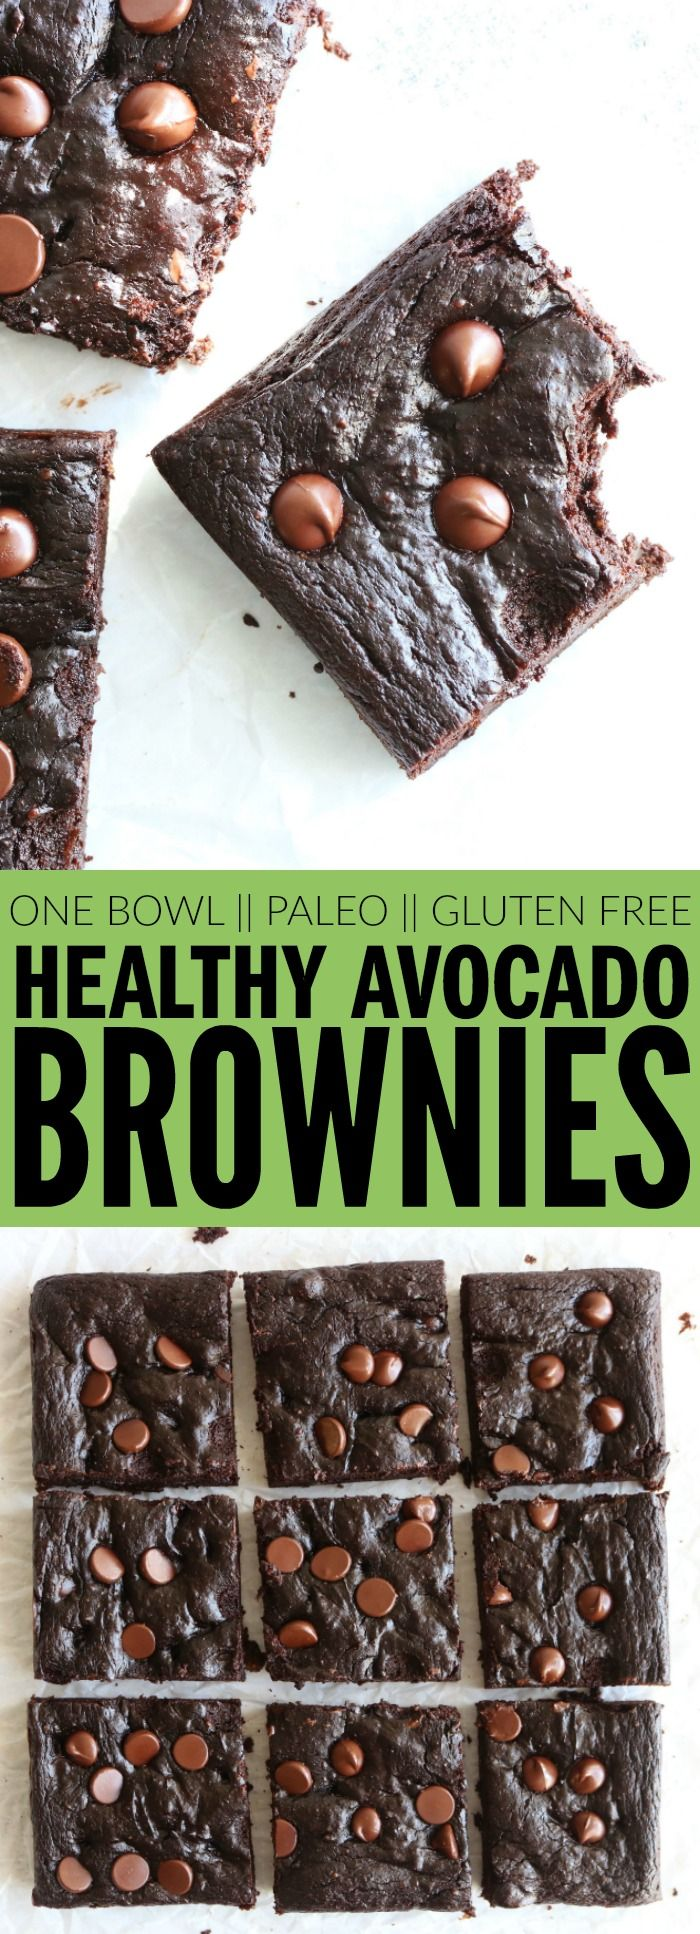 I can't wait for you to try these paleo and gluten free Healthy Avocado Brownies!! They're so moist and fudgey, rich and chocolatey! They're the perfect decadent dessert recipe you can feel good about! thetoastedpinenut.com #paleo #glutenfree #healthy #avocado #brownies #dessert #kidfriendly